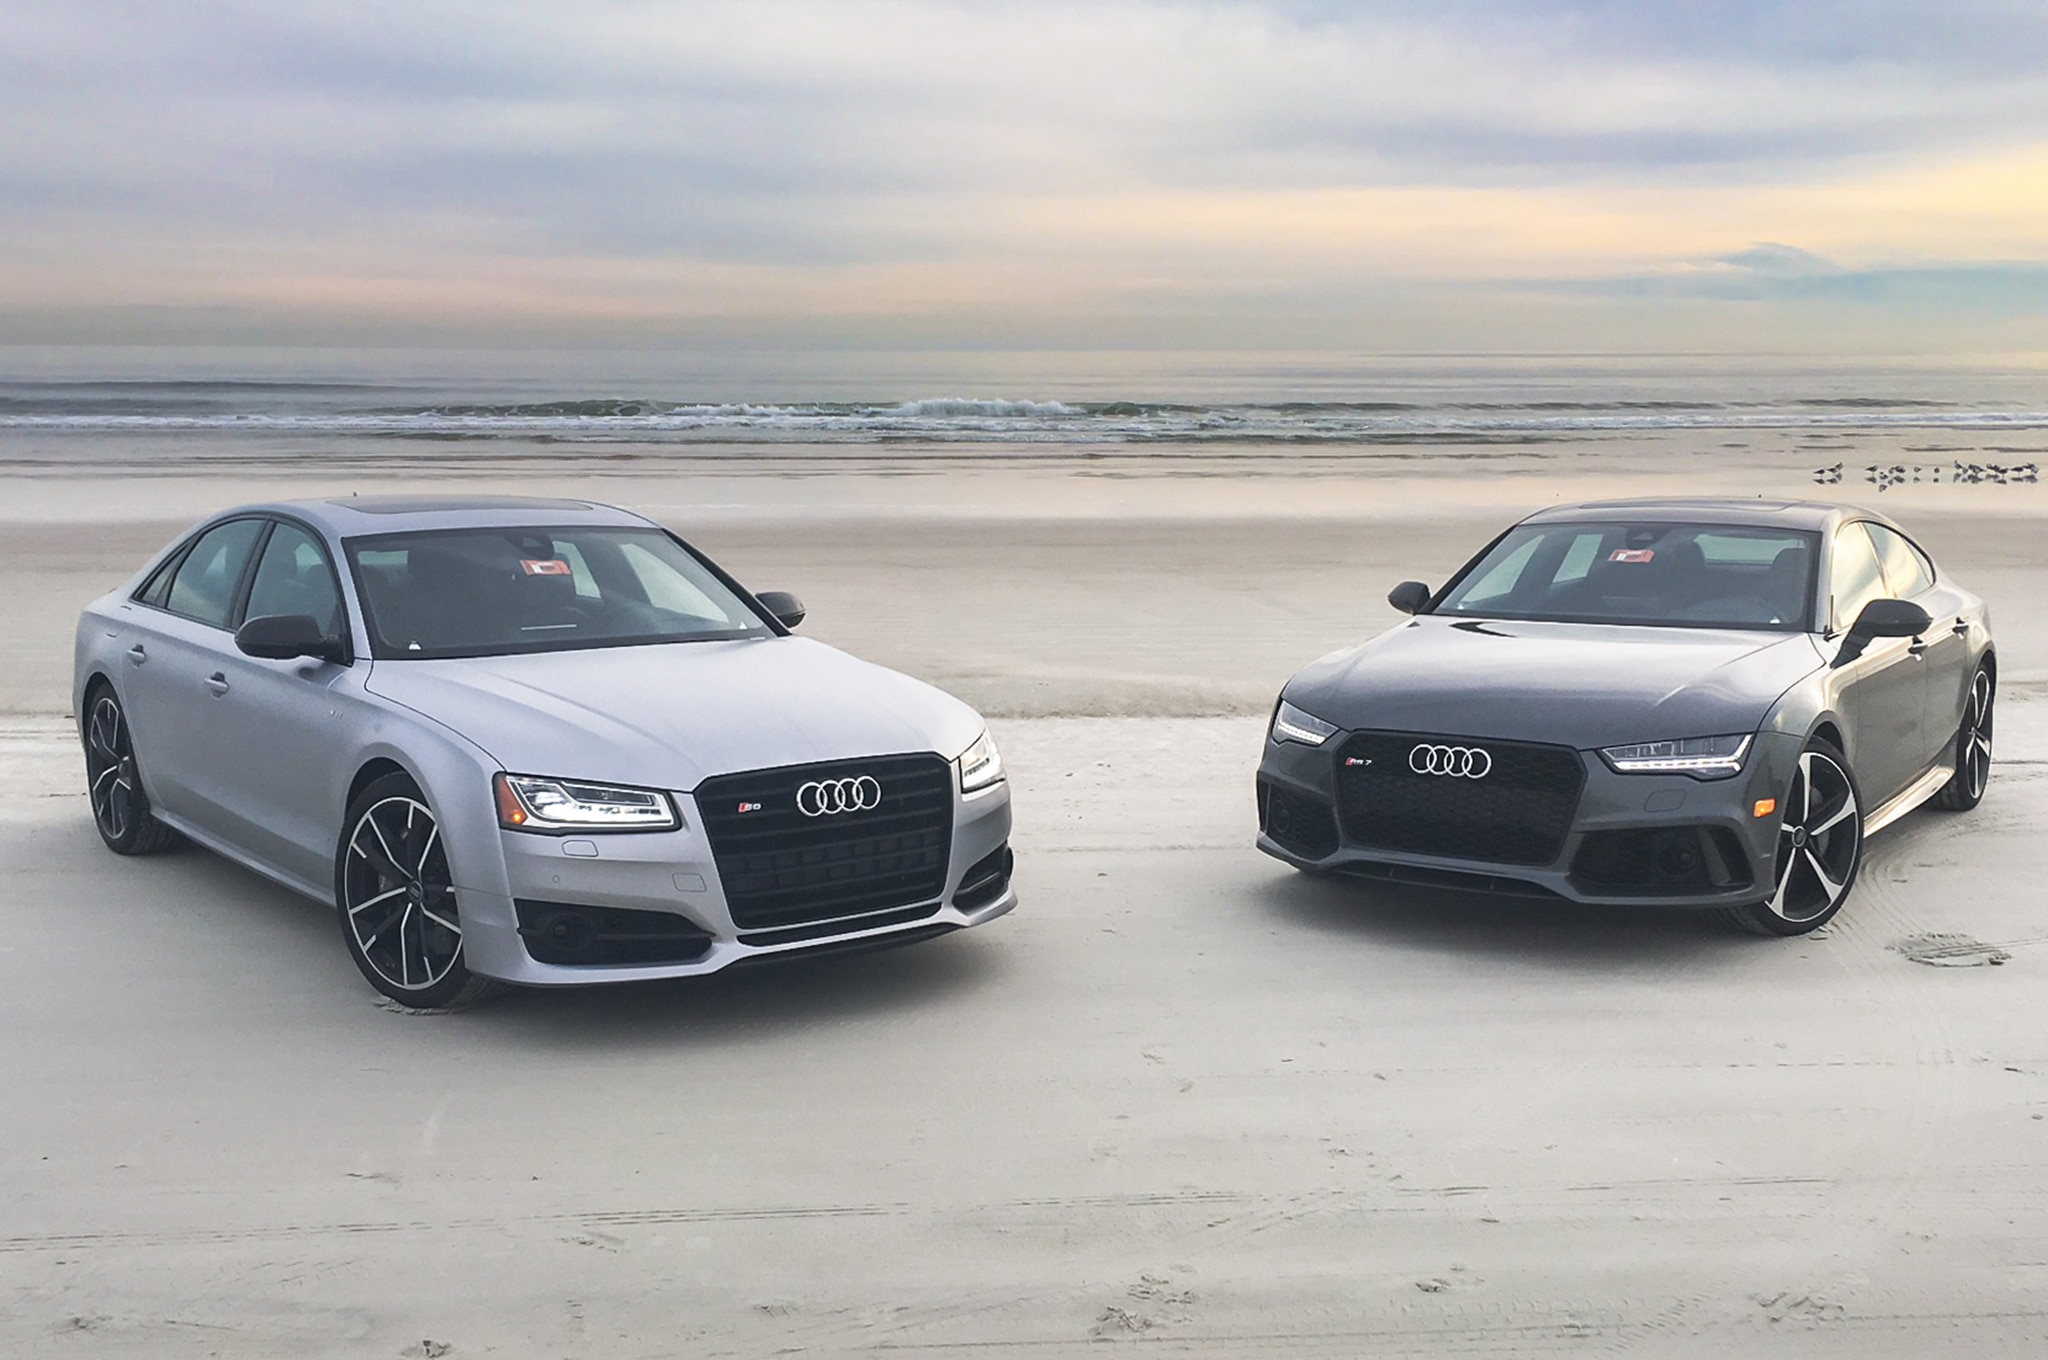 2016 Audi RS 7 And S8 Beach